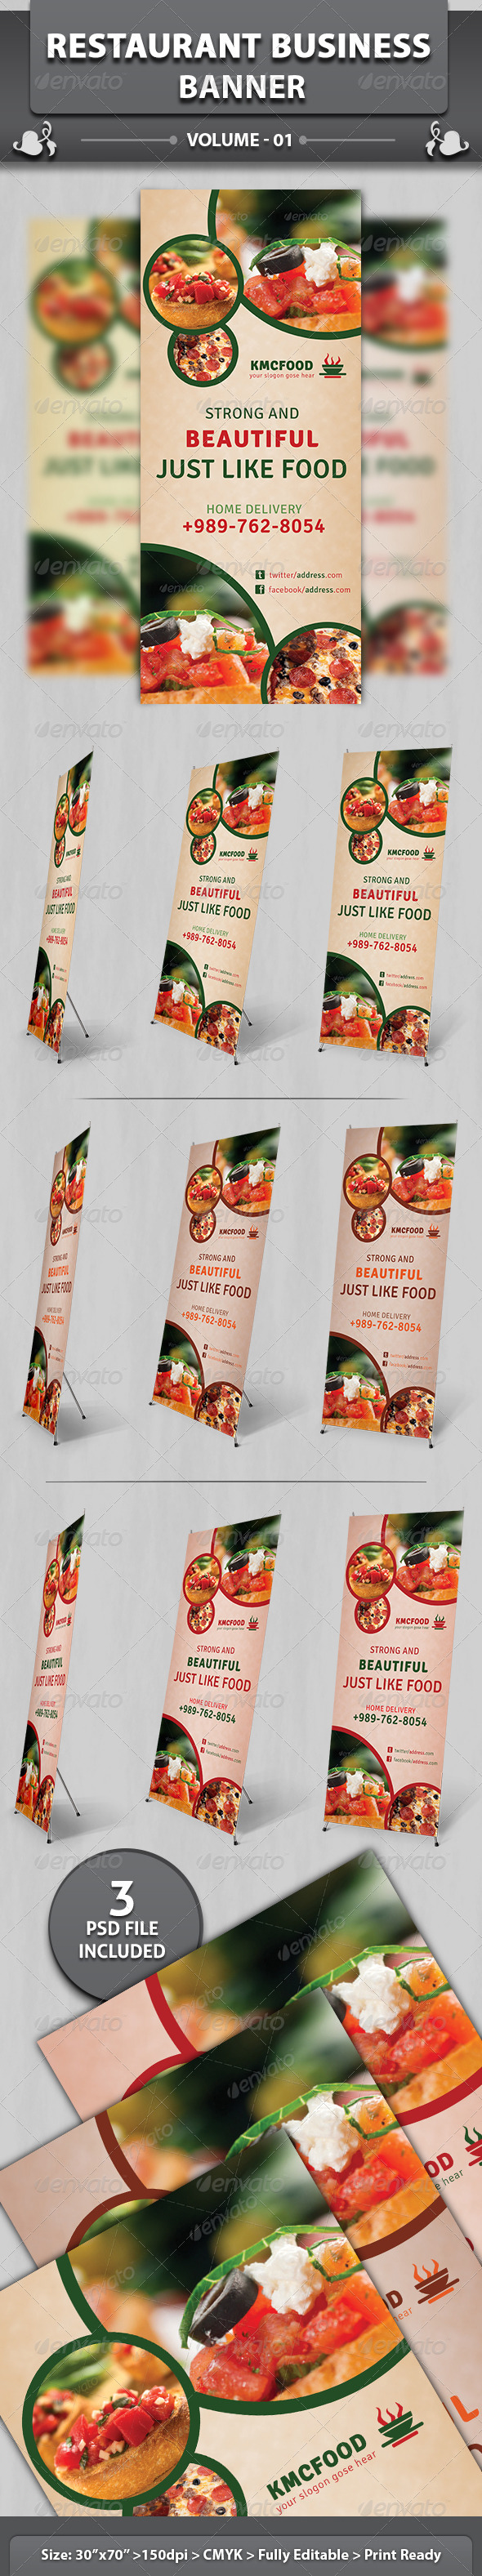 Restaurant Business Banner - Signage Print Templates